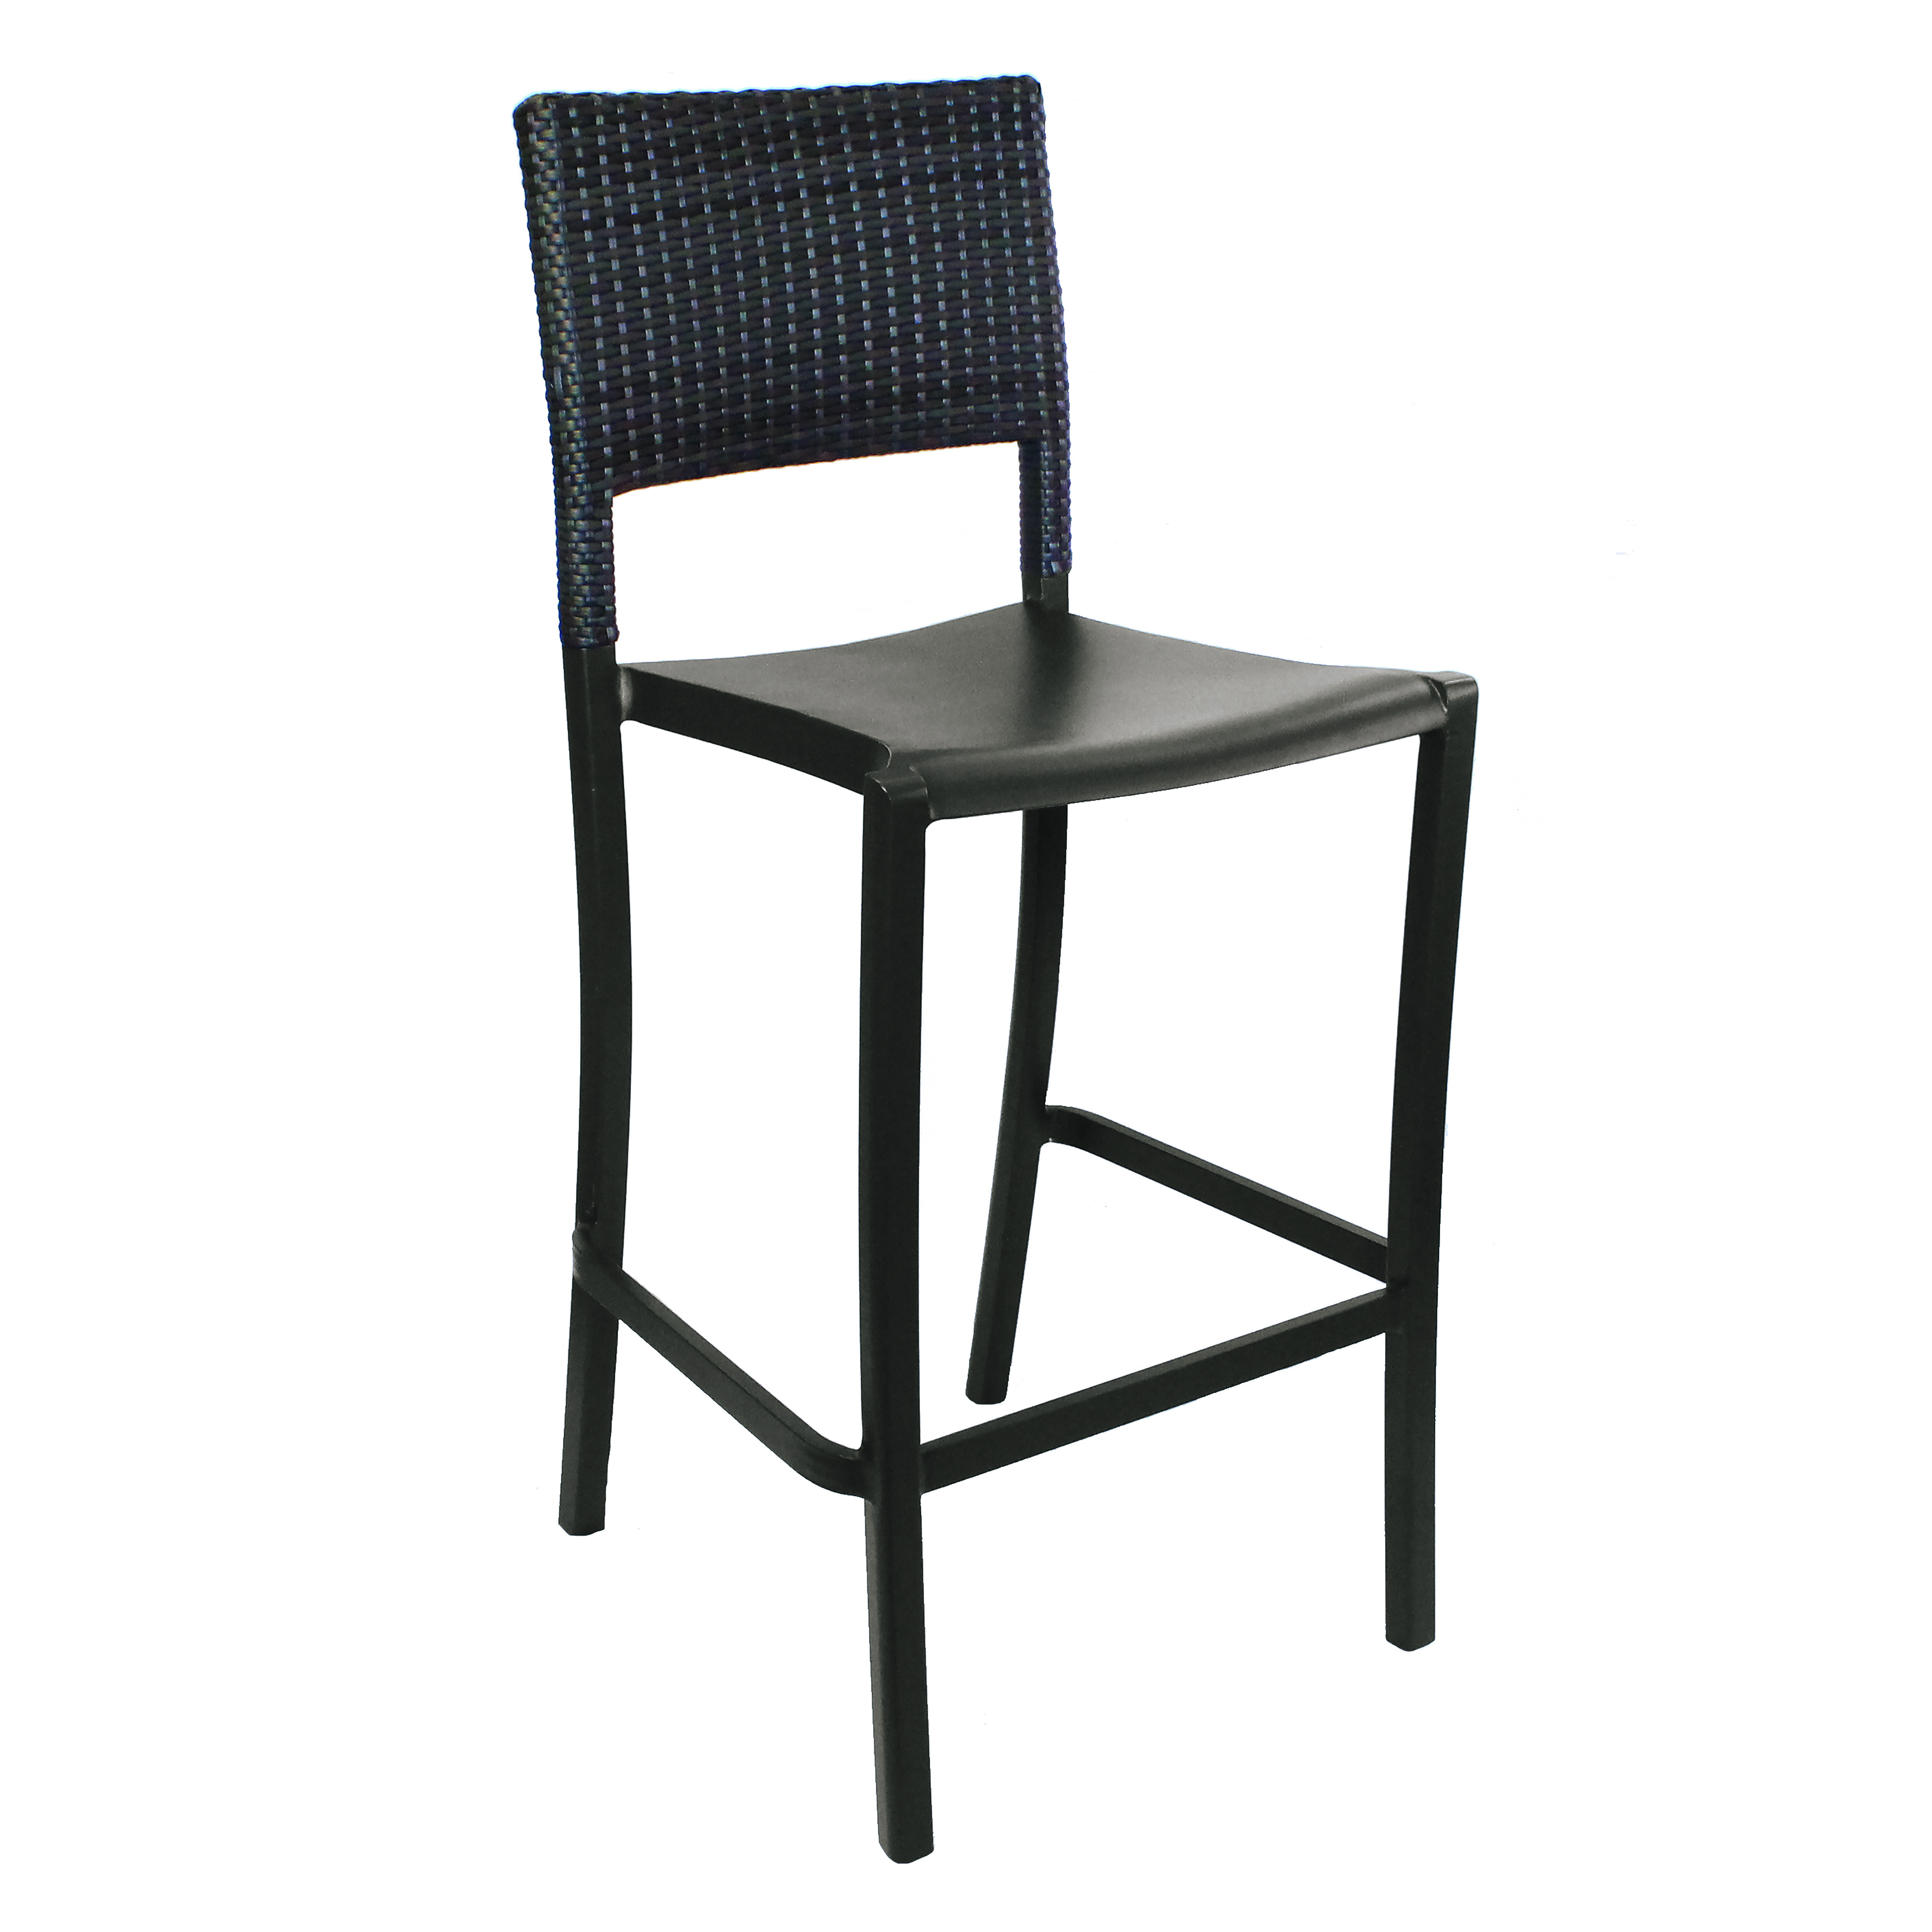 Grosfillex US927037 bar stool, stacking, outdoor